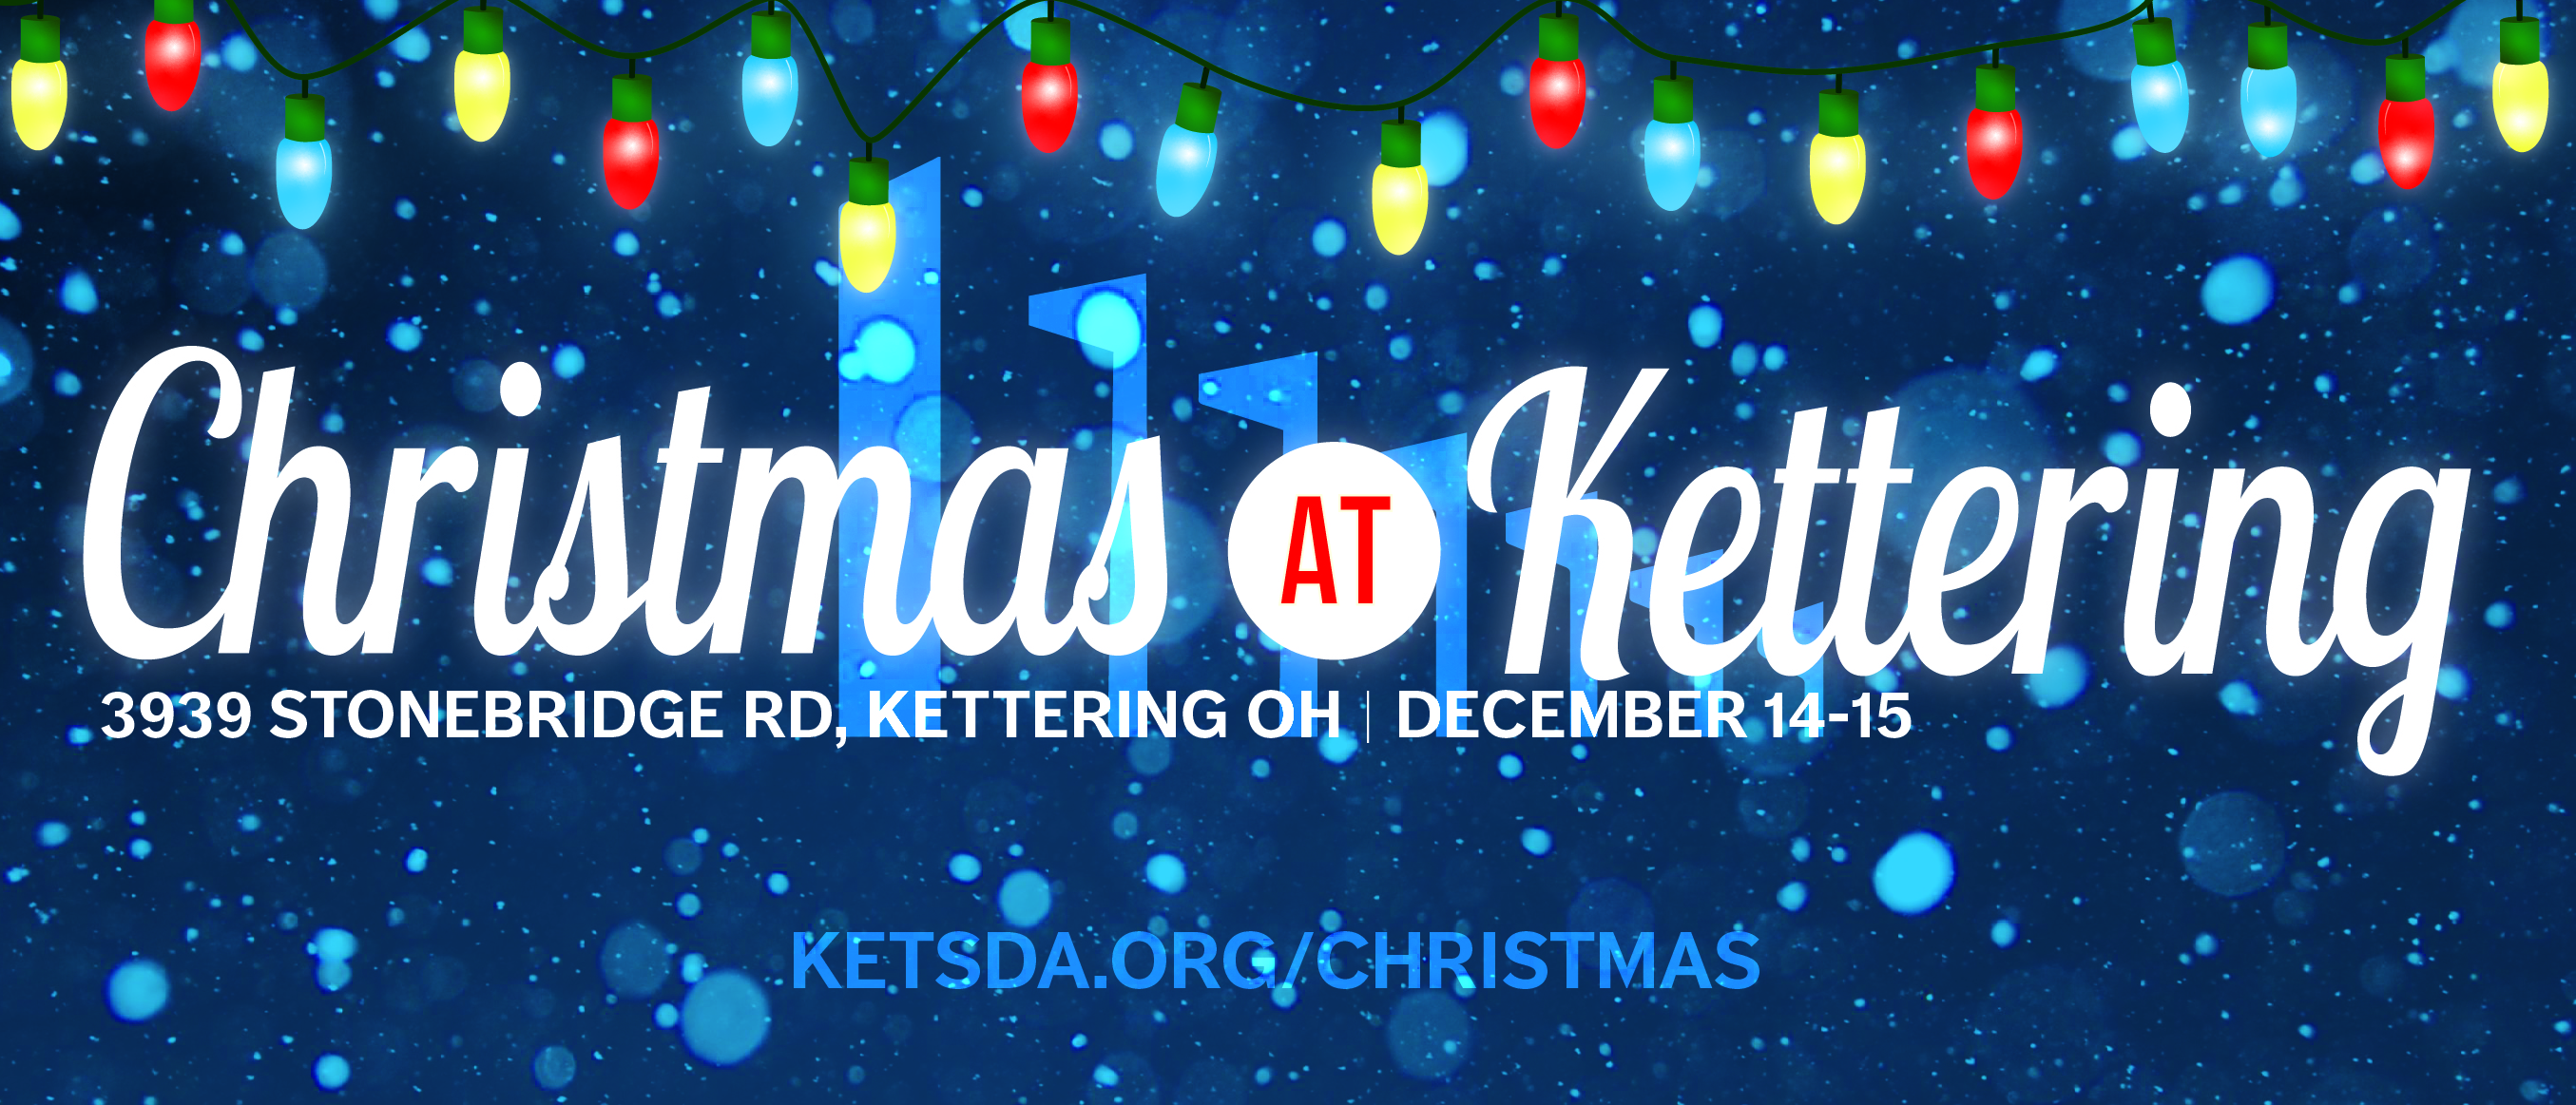 Do 7th Day Adventists Celebrate Christmas.Christmas At Kettering 2018 Graphic Web Main 01